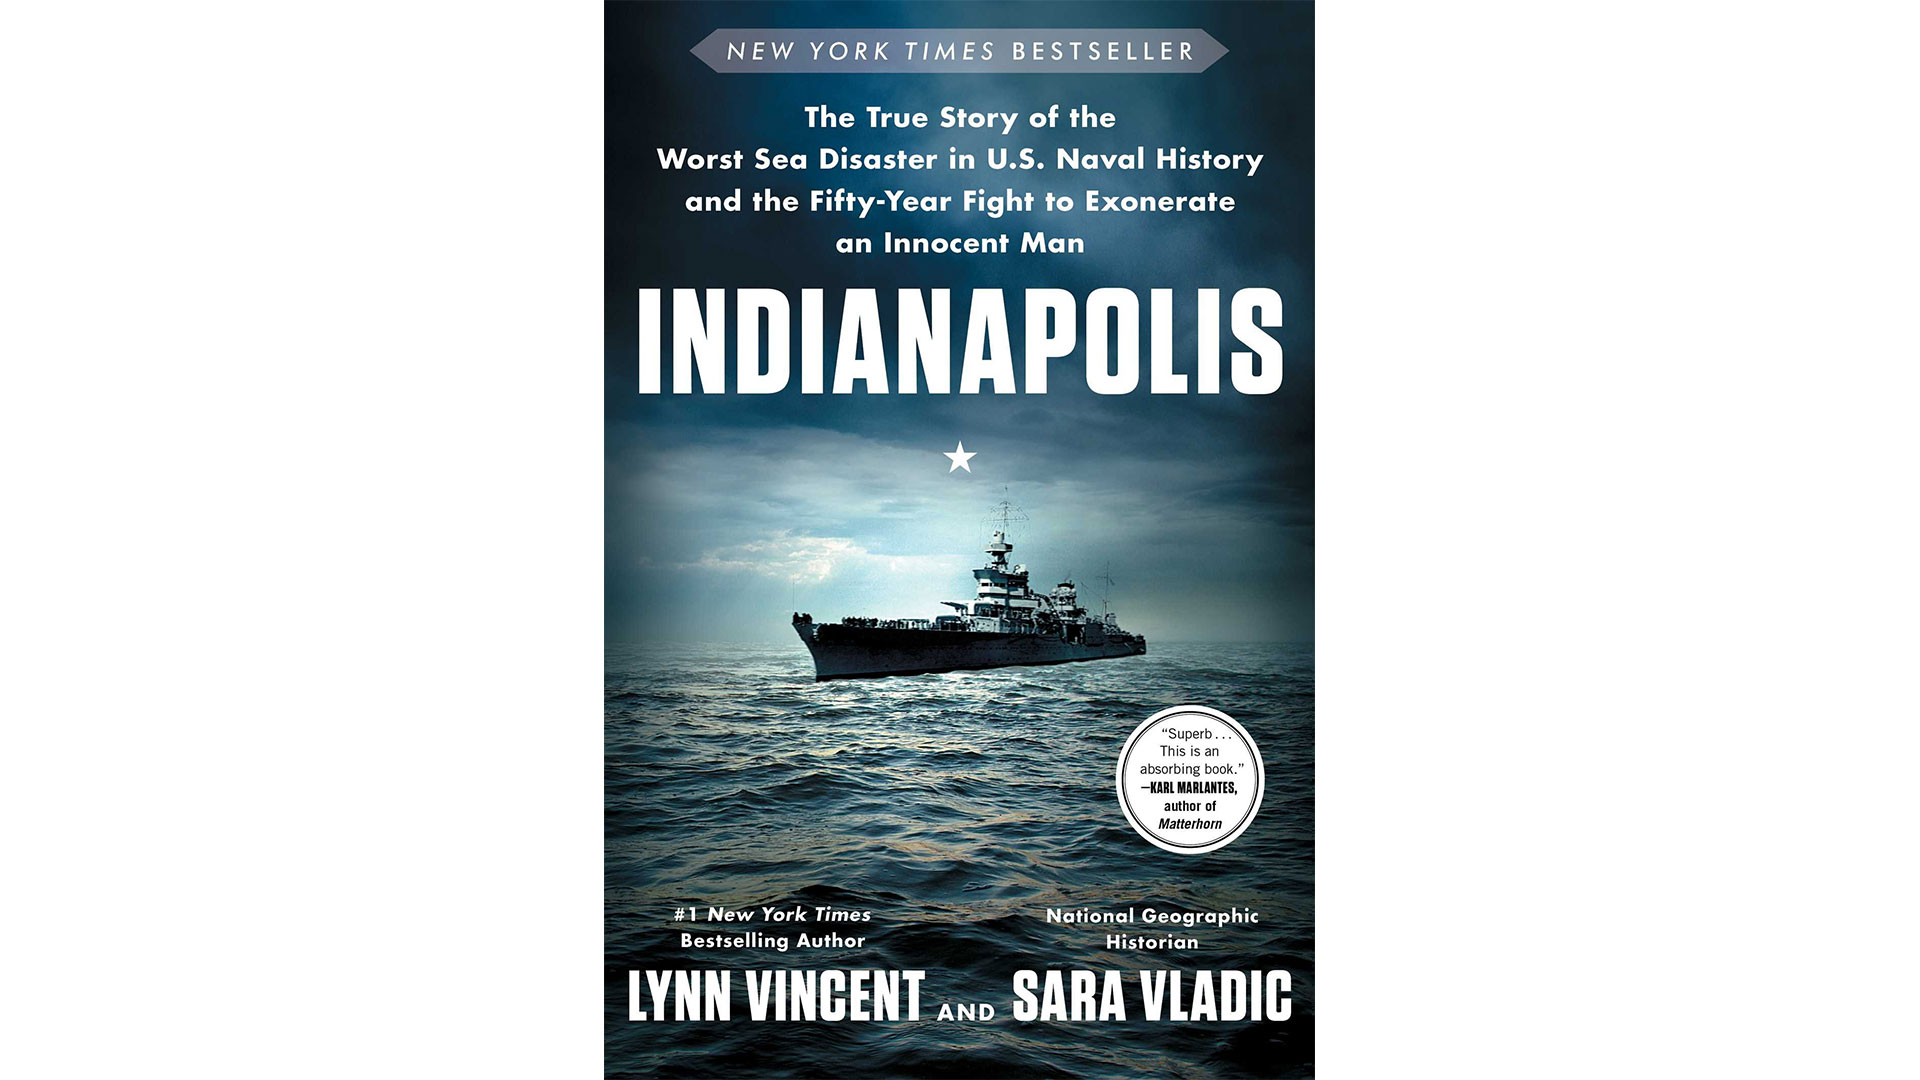 3.  Indianapolis: The True Story of the Worst Sea Disaster in U.S. Naval History and the Fifty-Year Fight to Exonerate an Innocent Man  by Lynn Vincent and Sara Vladic